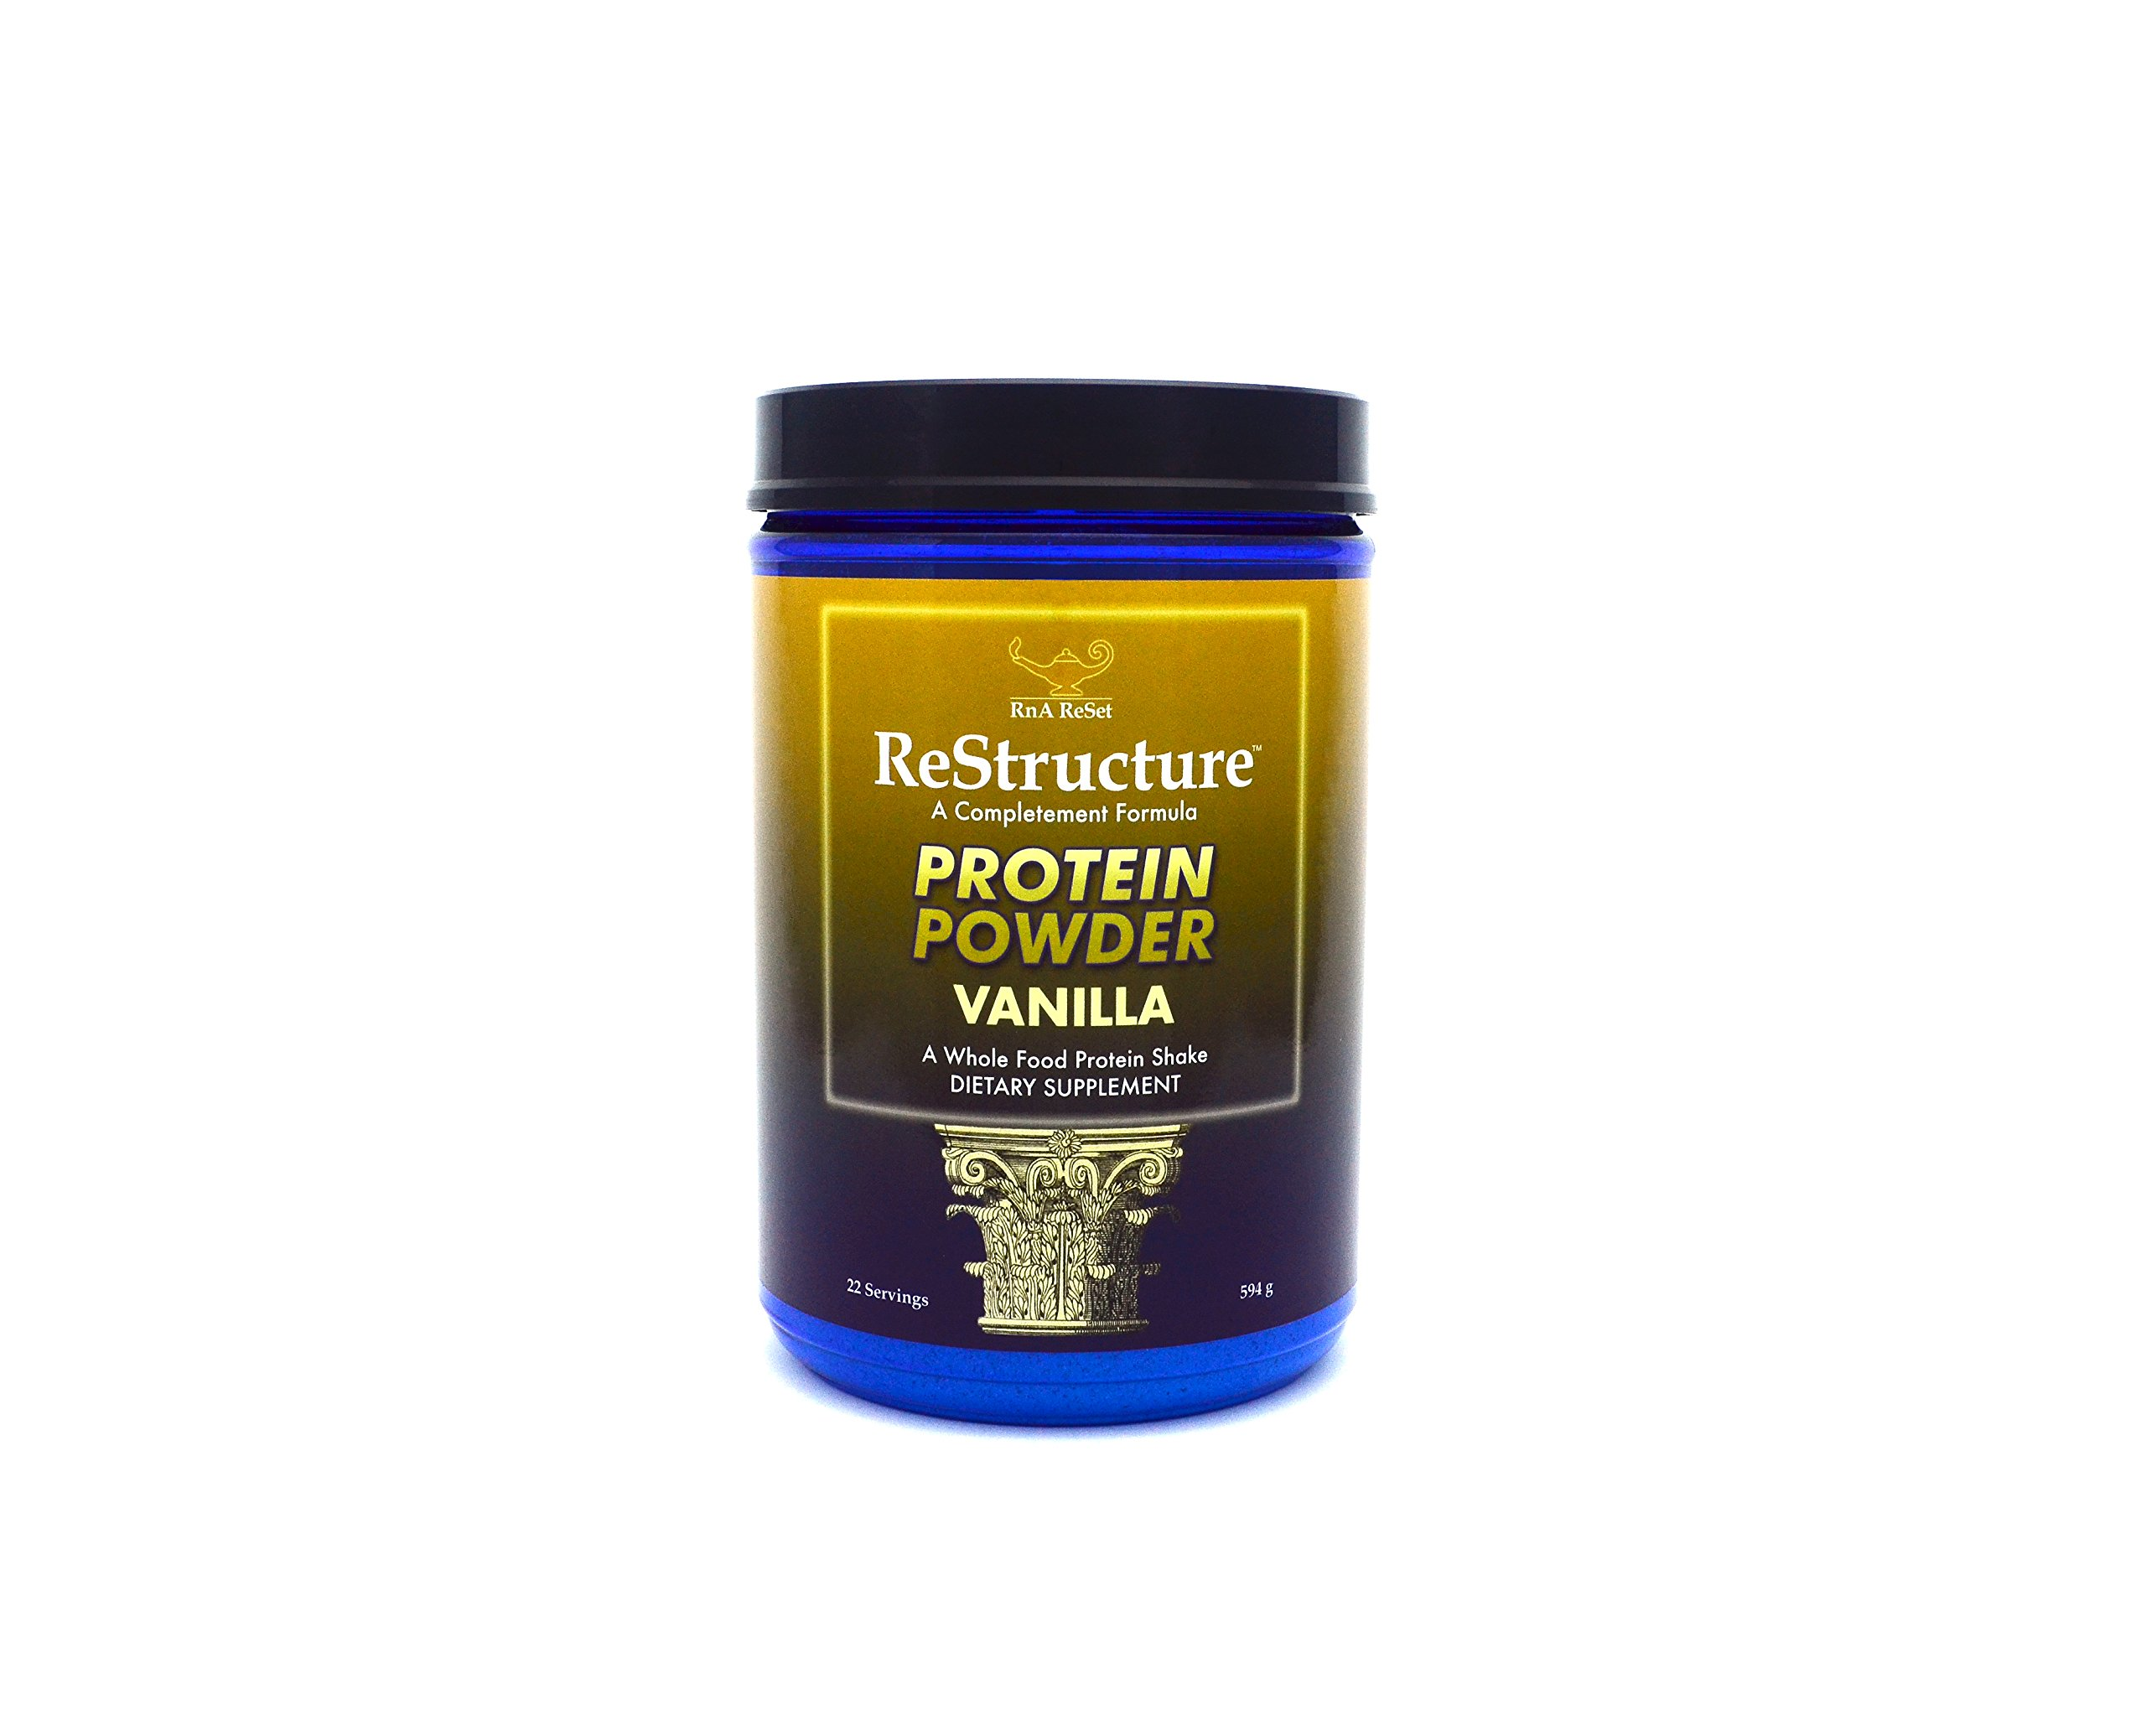 ReStructure Protein Shake A Whole Food formulated by Dr. Carolyn Dean. From RnAReSet. 594 grams